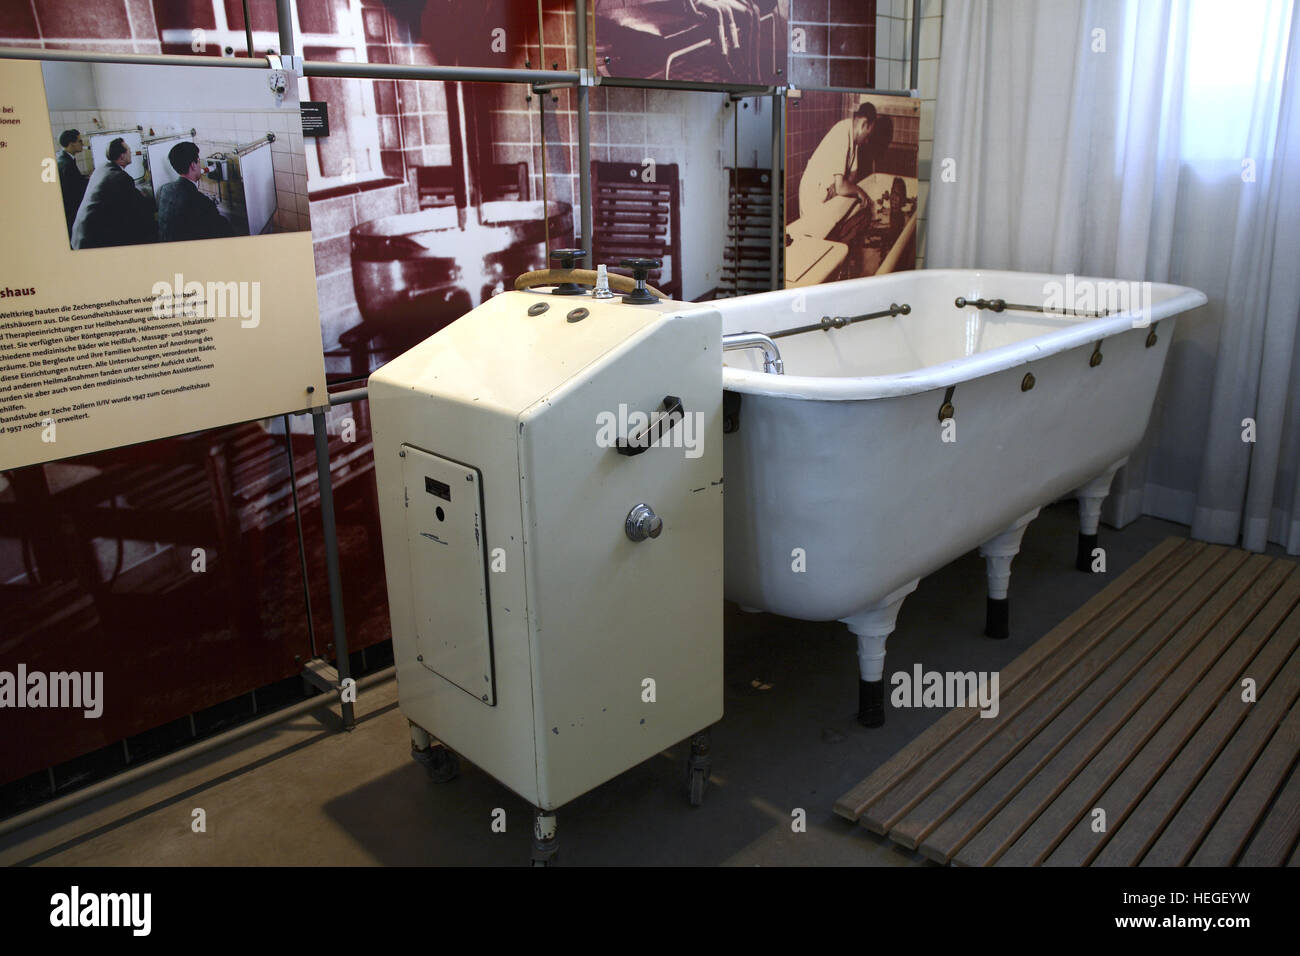 Germany, Ruhr Area, Dortmund, Westphalian industry museum Zeche Zollern in the district Boevinghausen, bath at the health house. Stock Photo